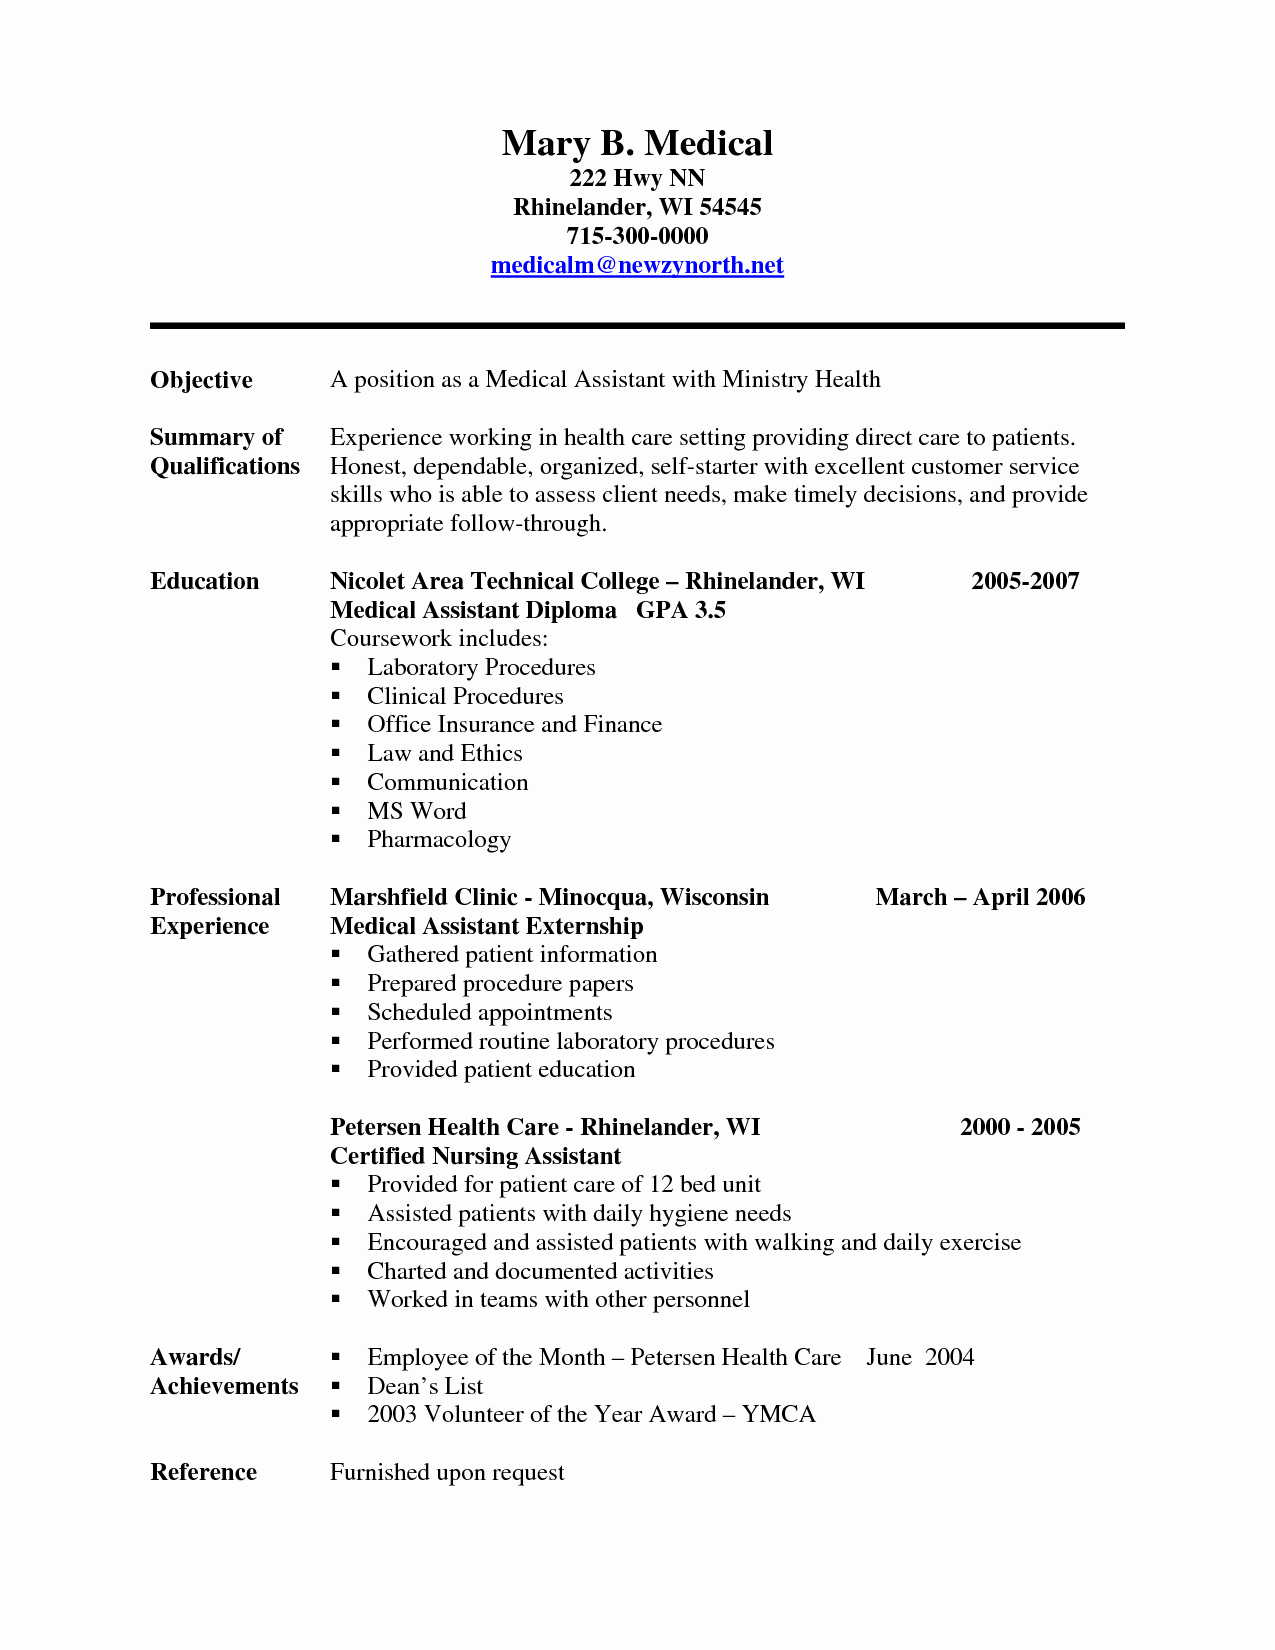 Resume Template for Medical assistant Awesome Experienced Medical assistant Resume Sample Cakepins